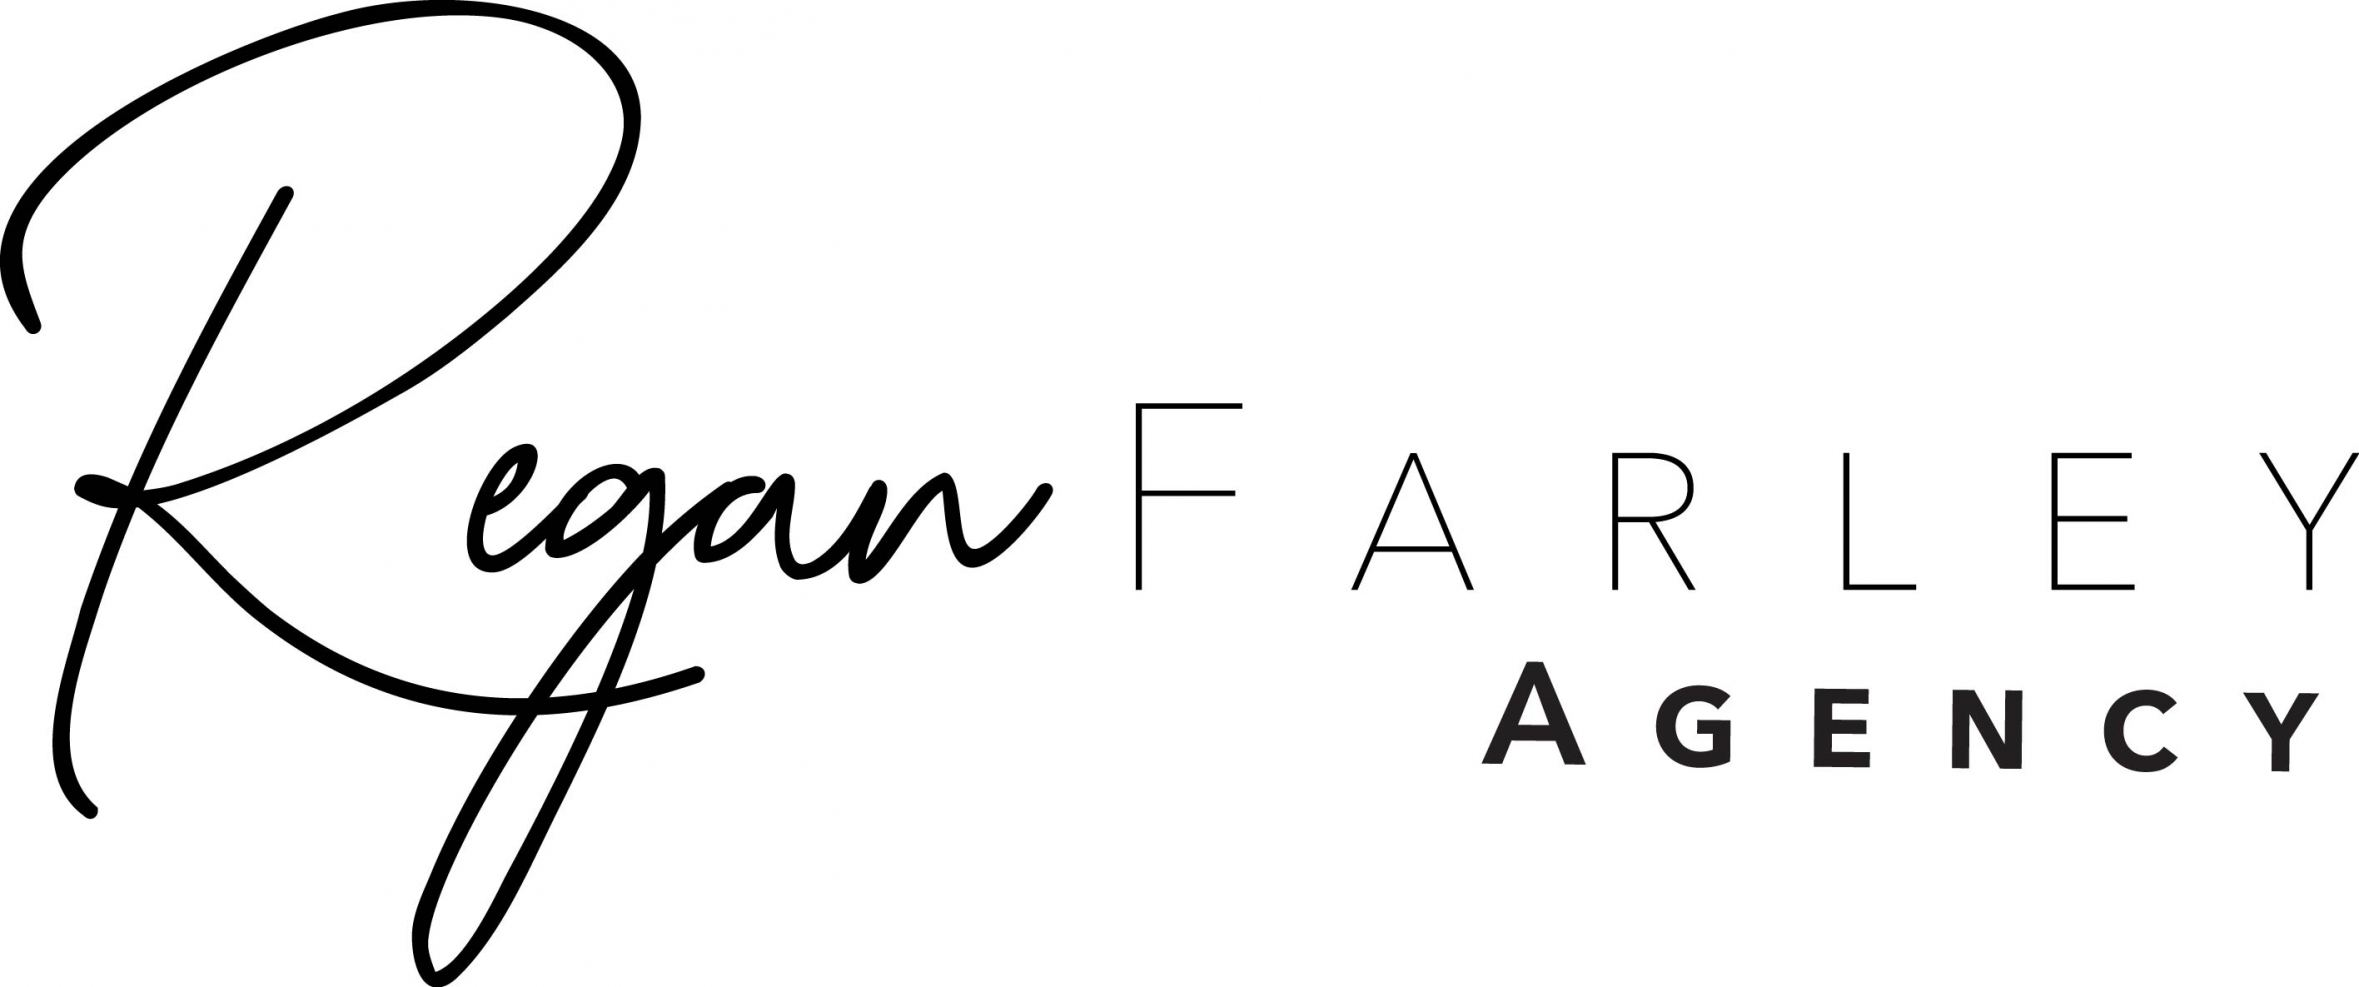 Regan Farley Agency Logo